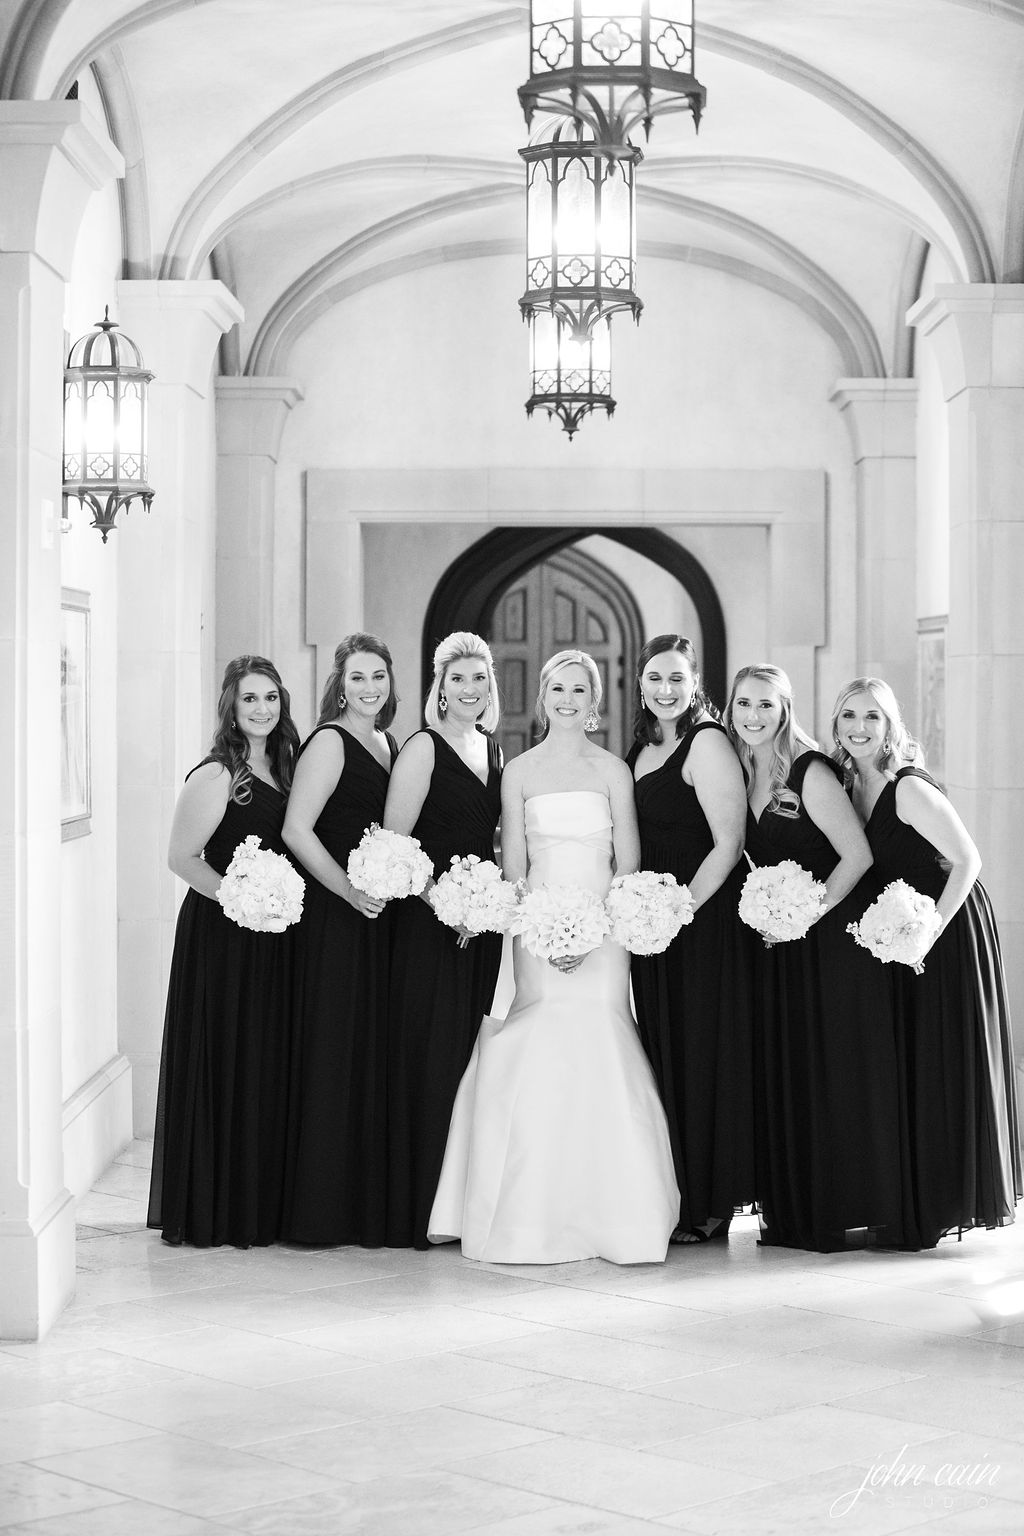 Dallas Country Club Wedding - Timeless Dallas Wedding - Wedding Planner in Dallas - Allday Events - Bride - 31.JPG